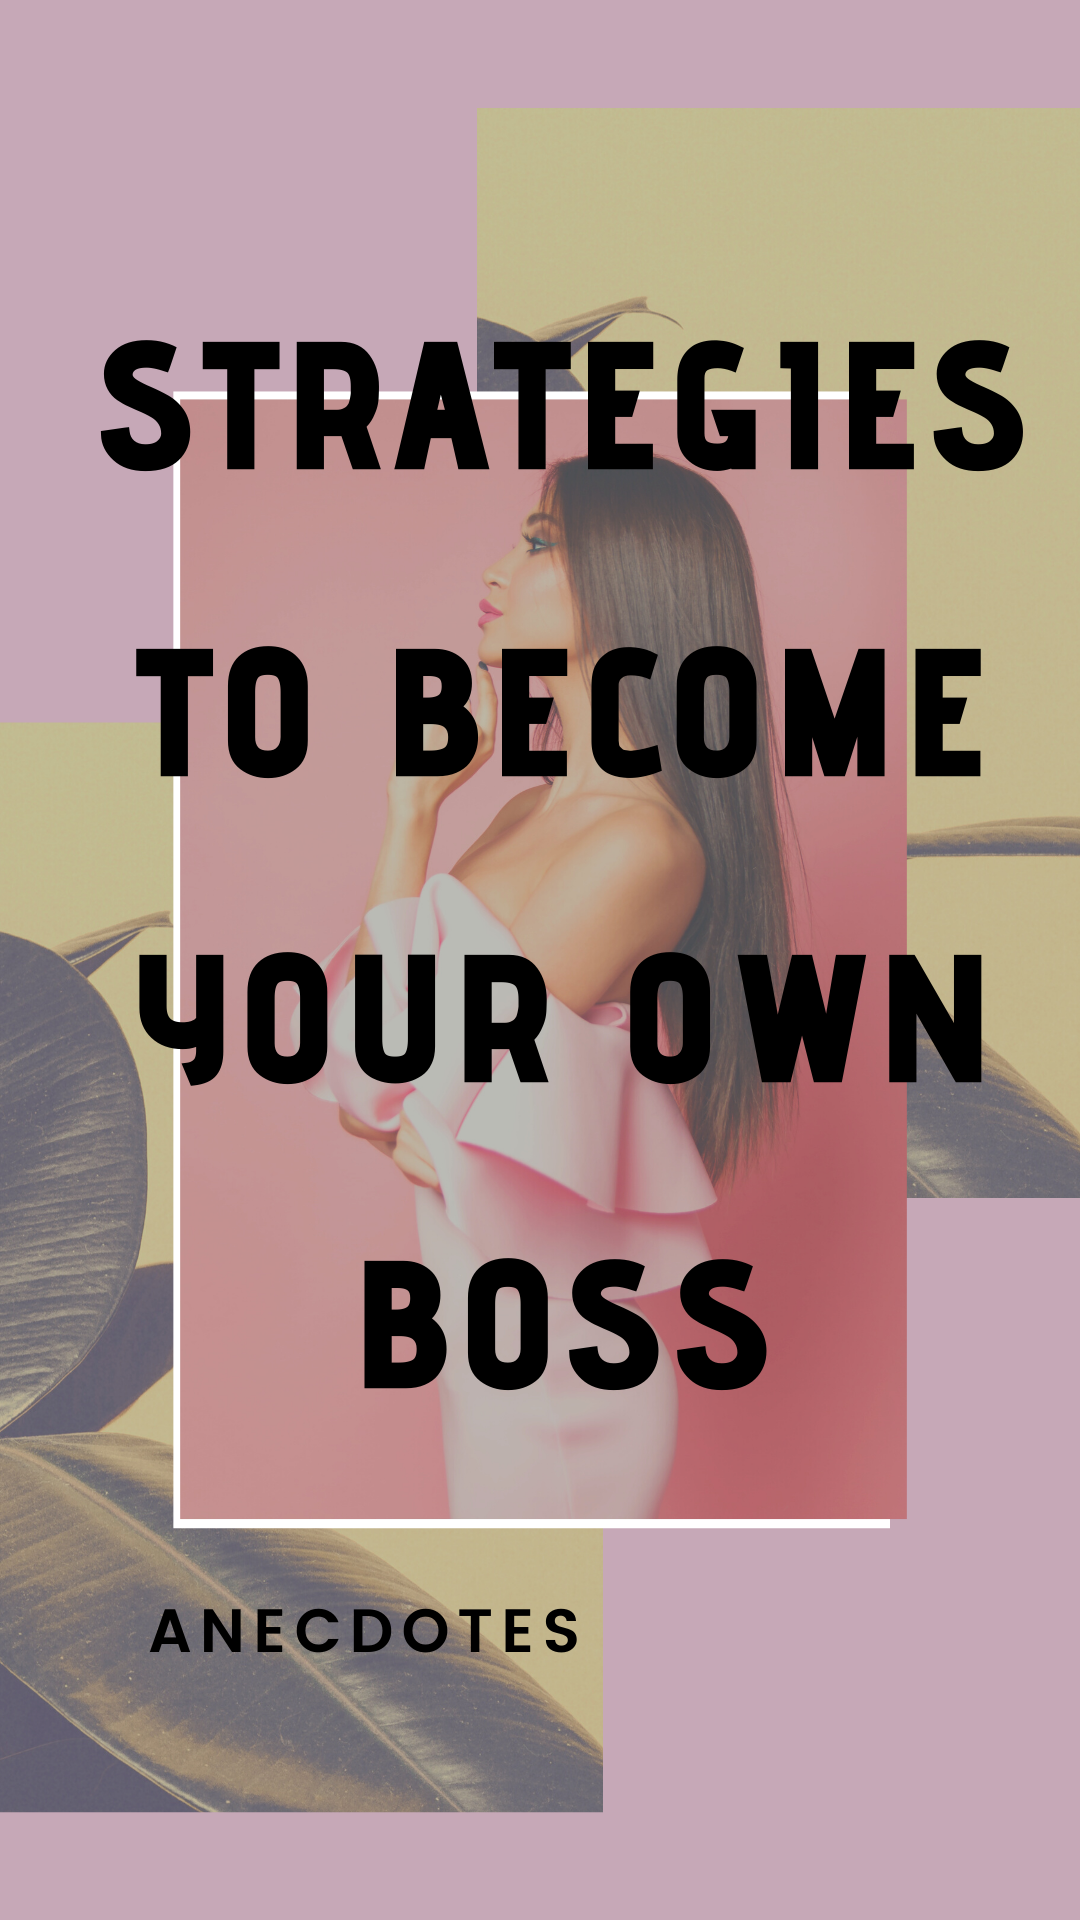 STRATEGIES to become your own boss